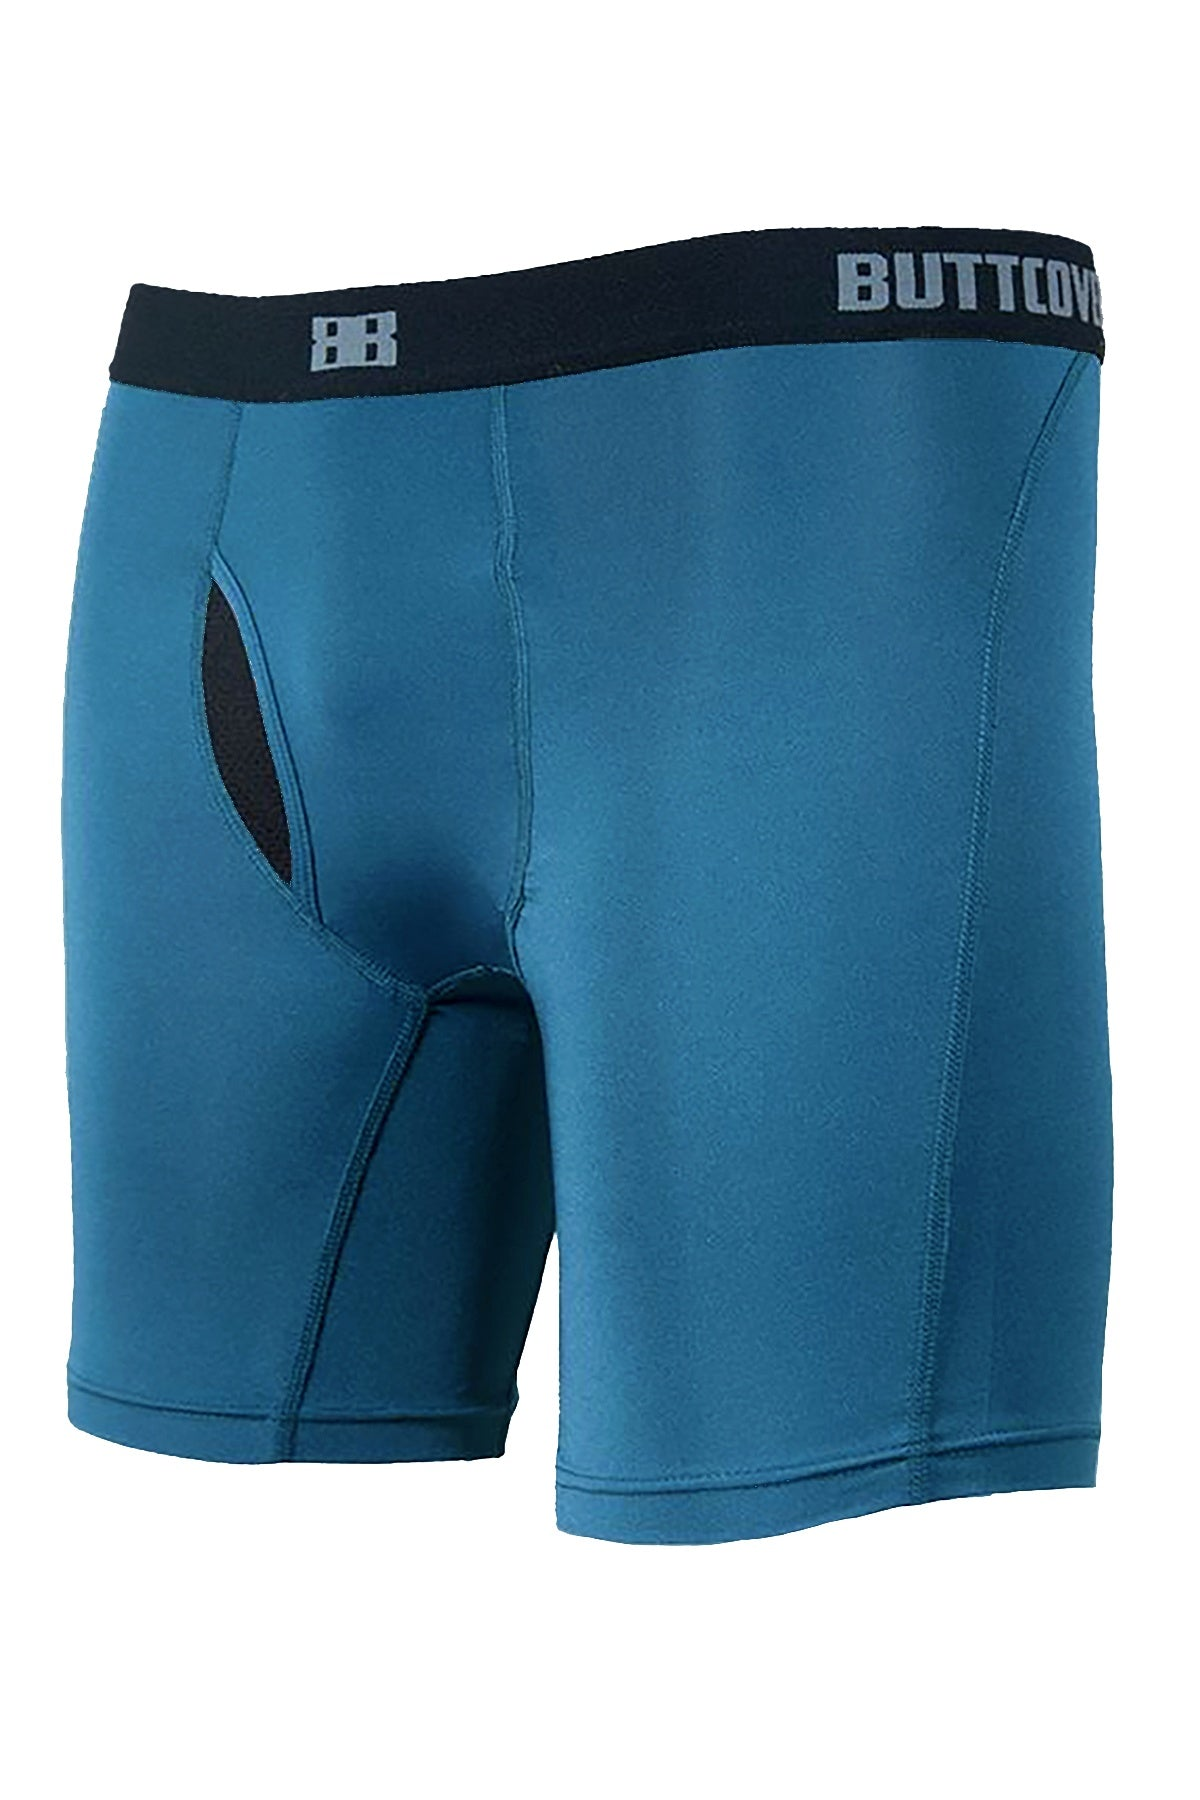 Buttcovers Peacock Blue Boxer Brief